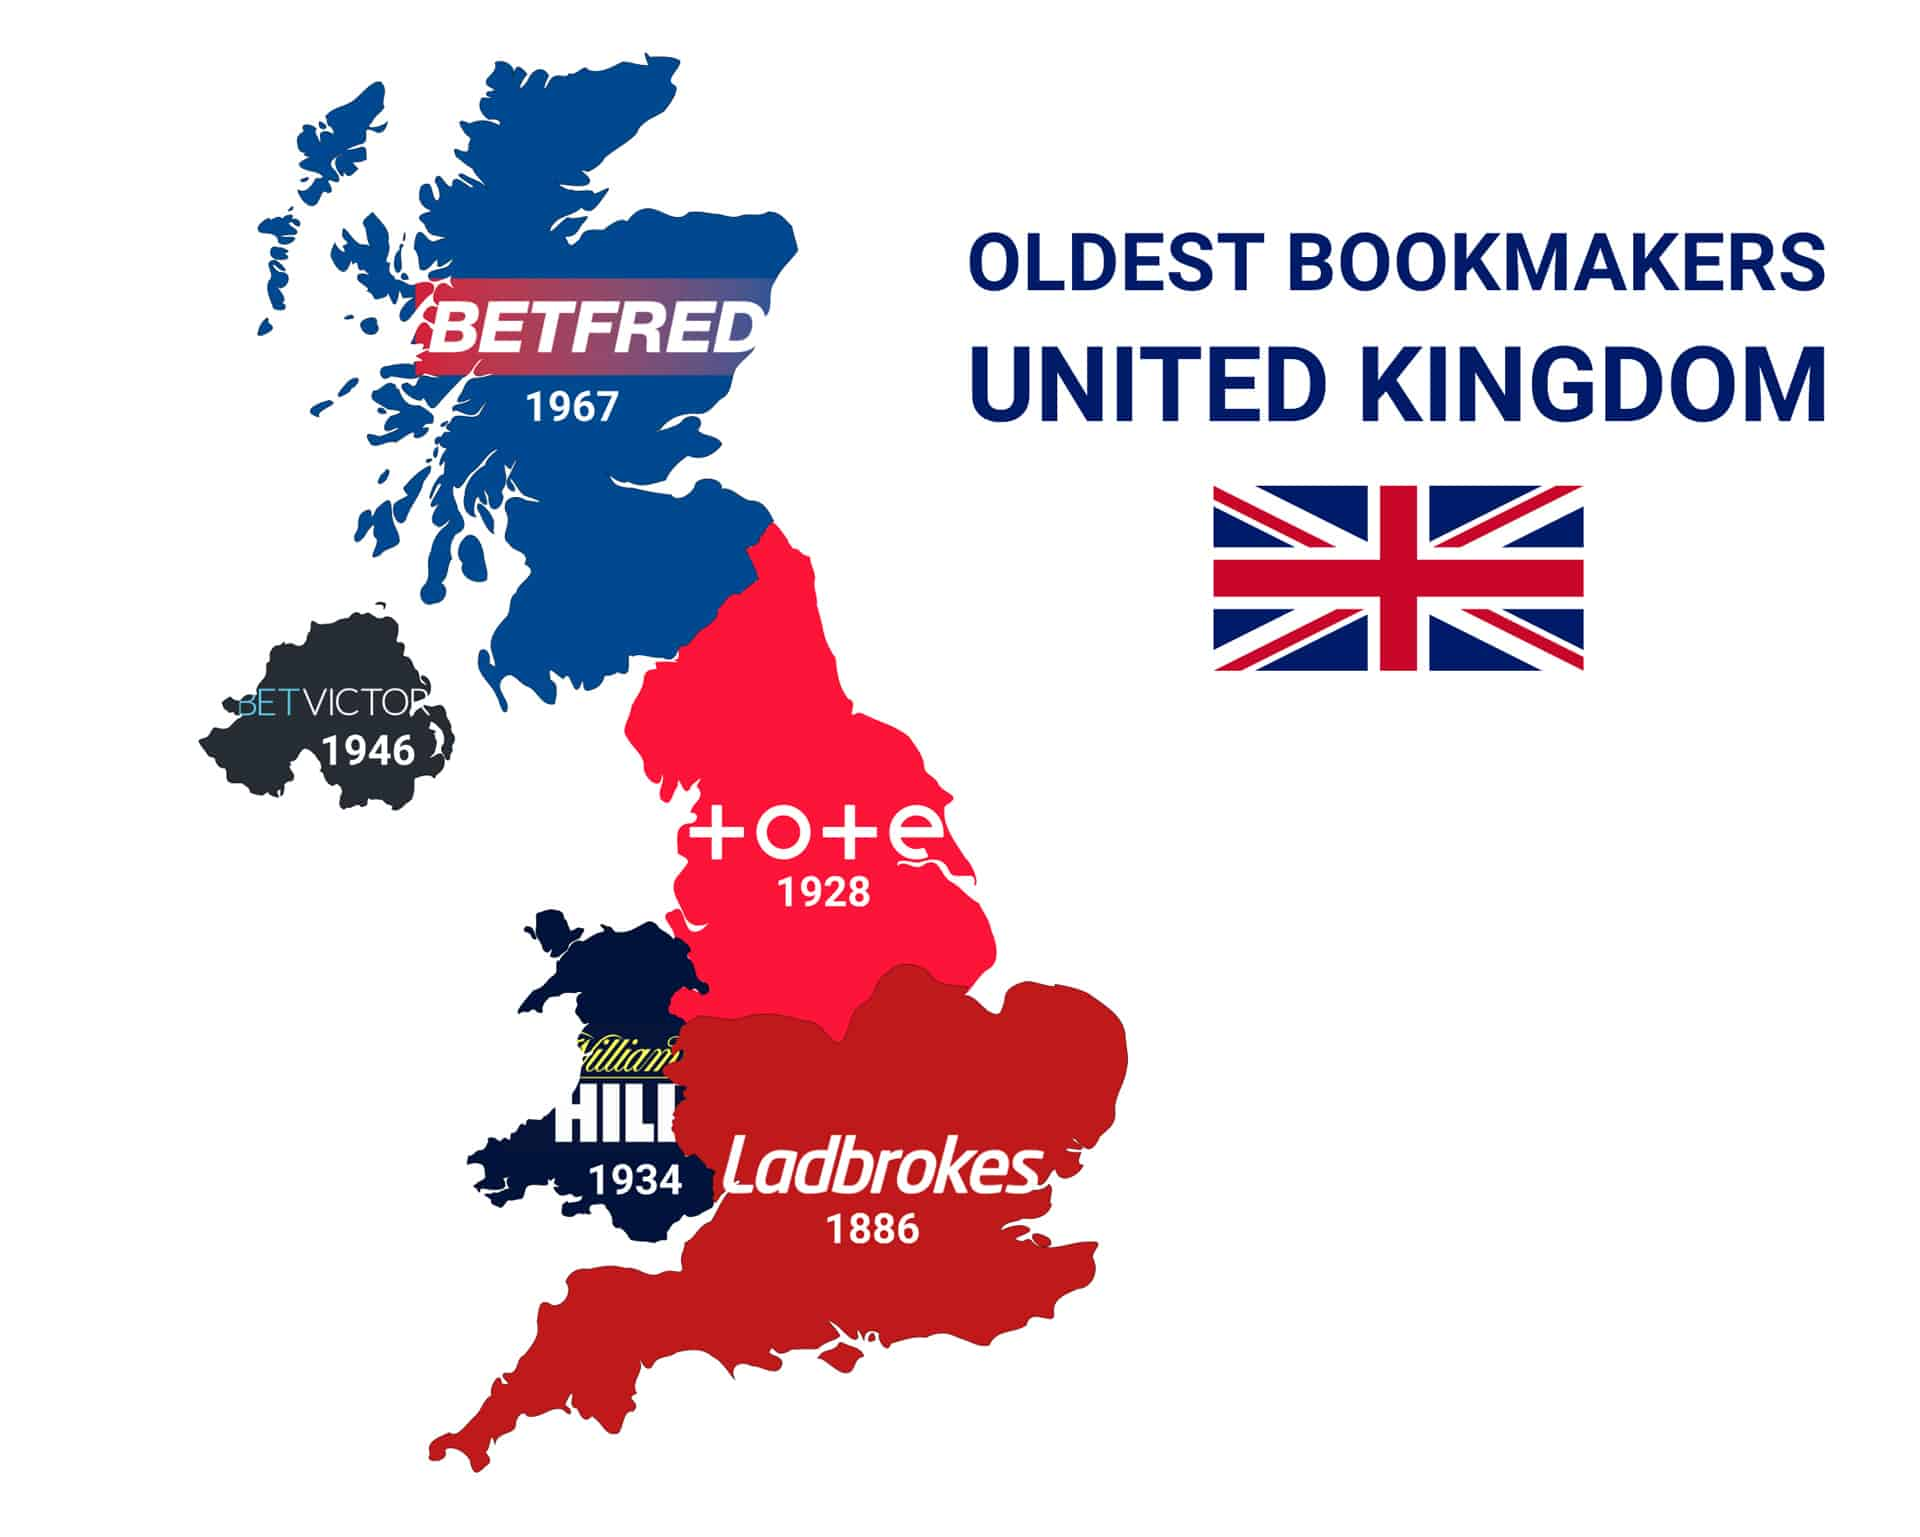 top 5 oldest bookmakers uk